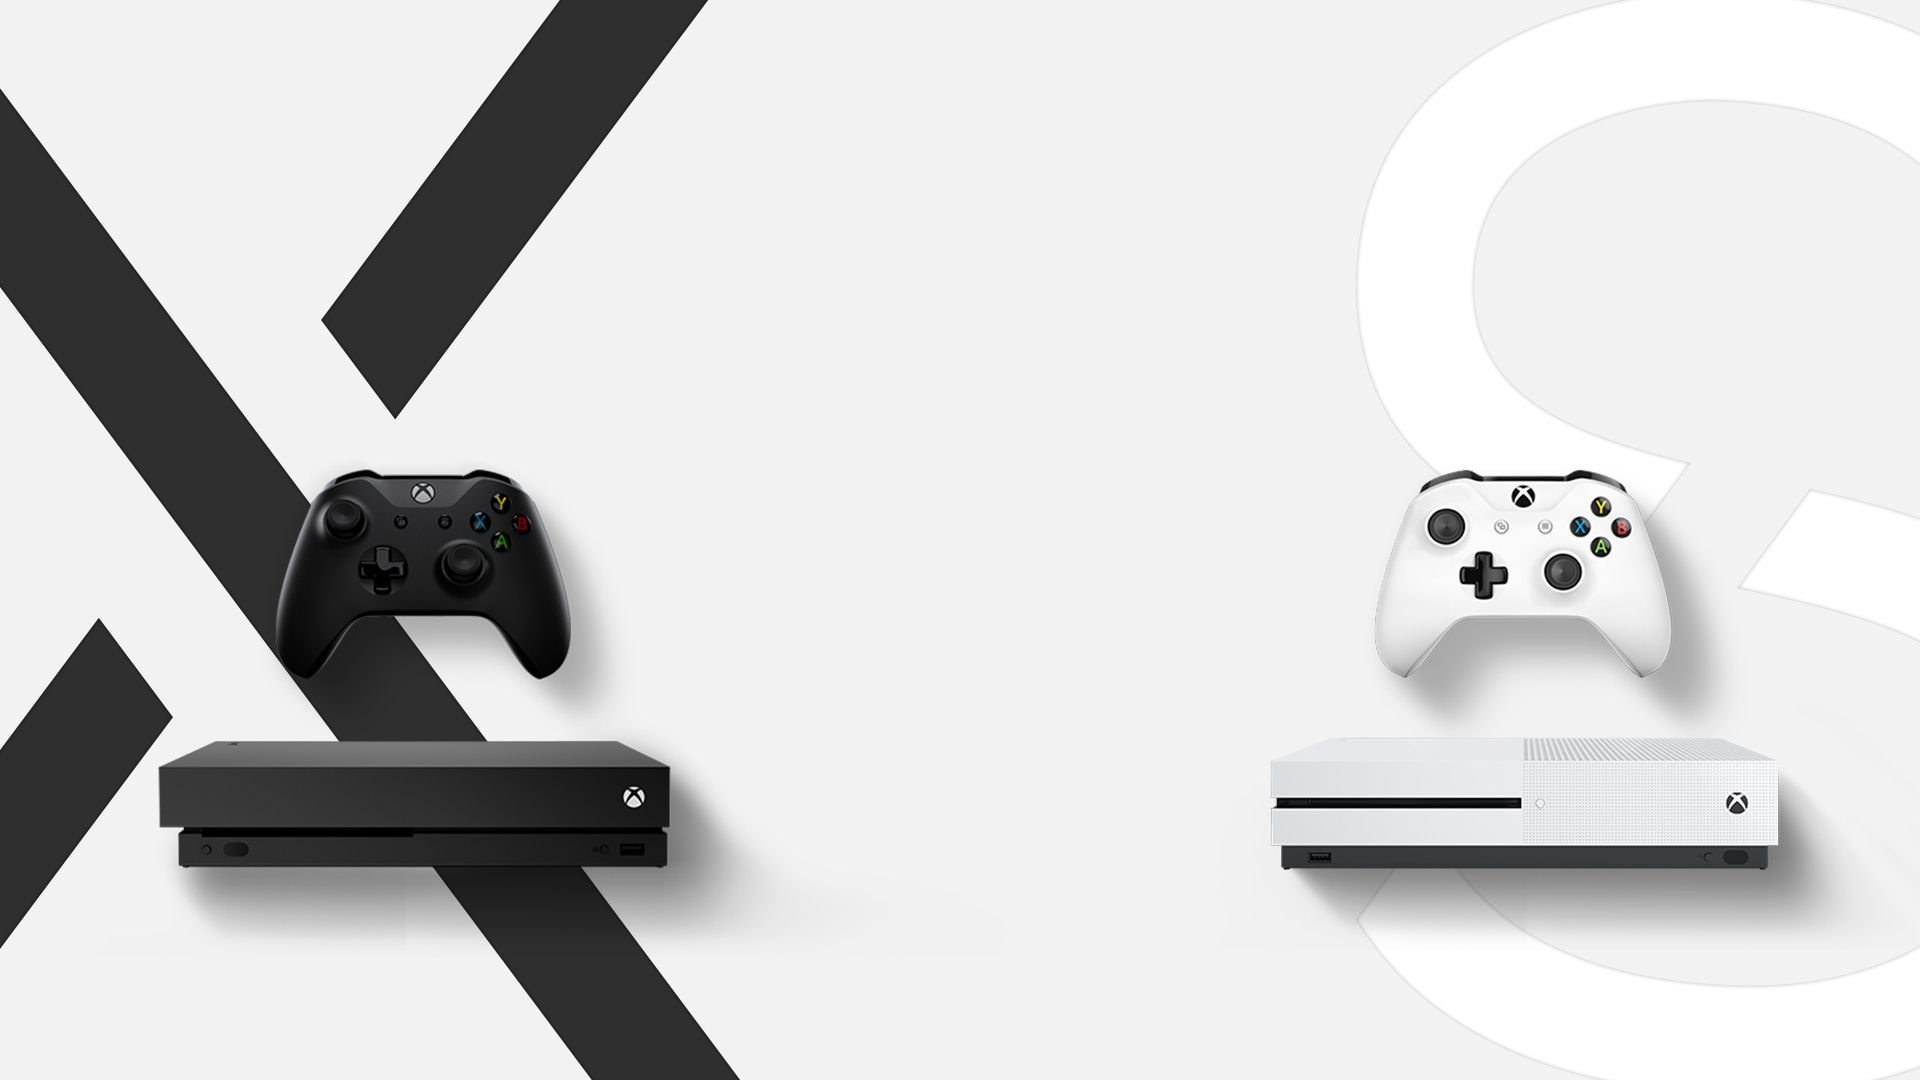 1920x1080 Buy the Right Xbox One Console | Choose Xbox One S or Xbox One X